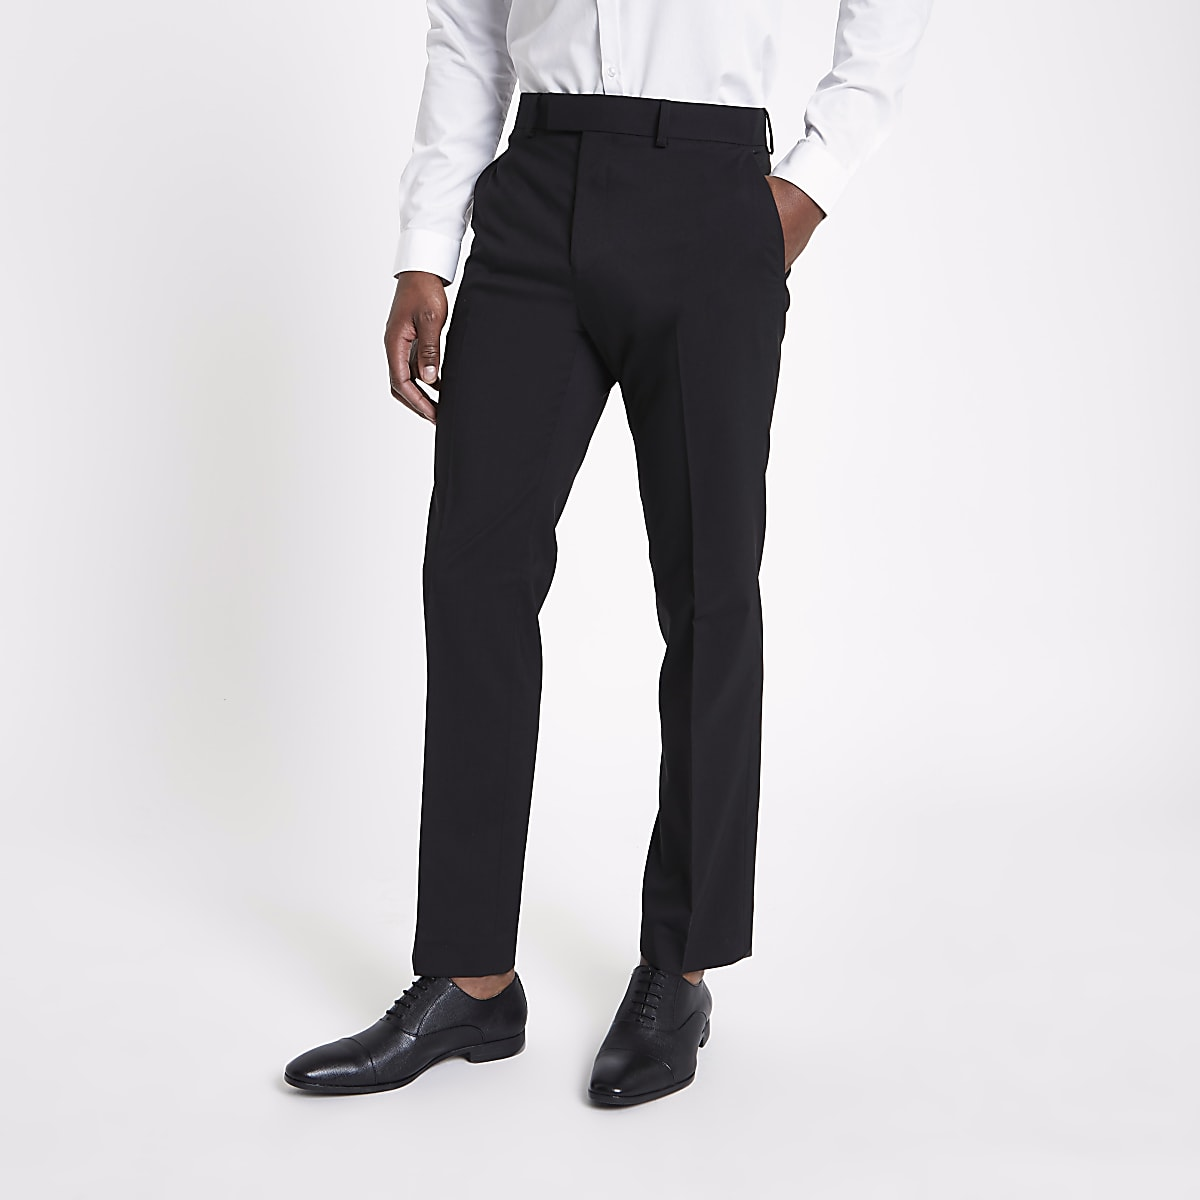 Black tailored fit suit trousers